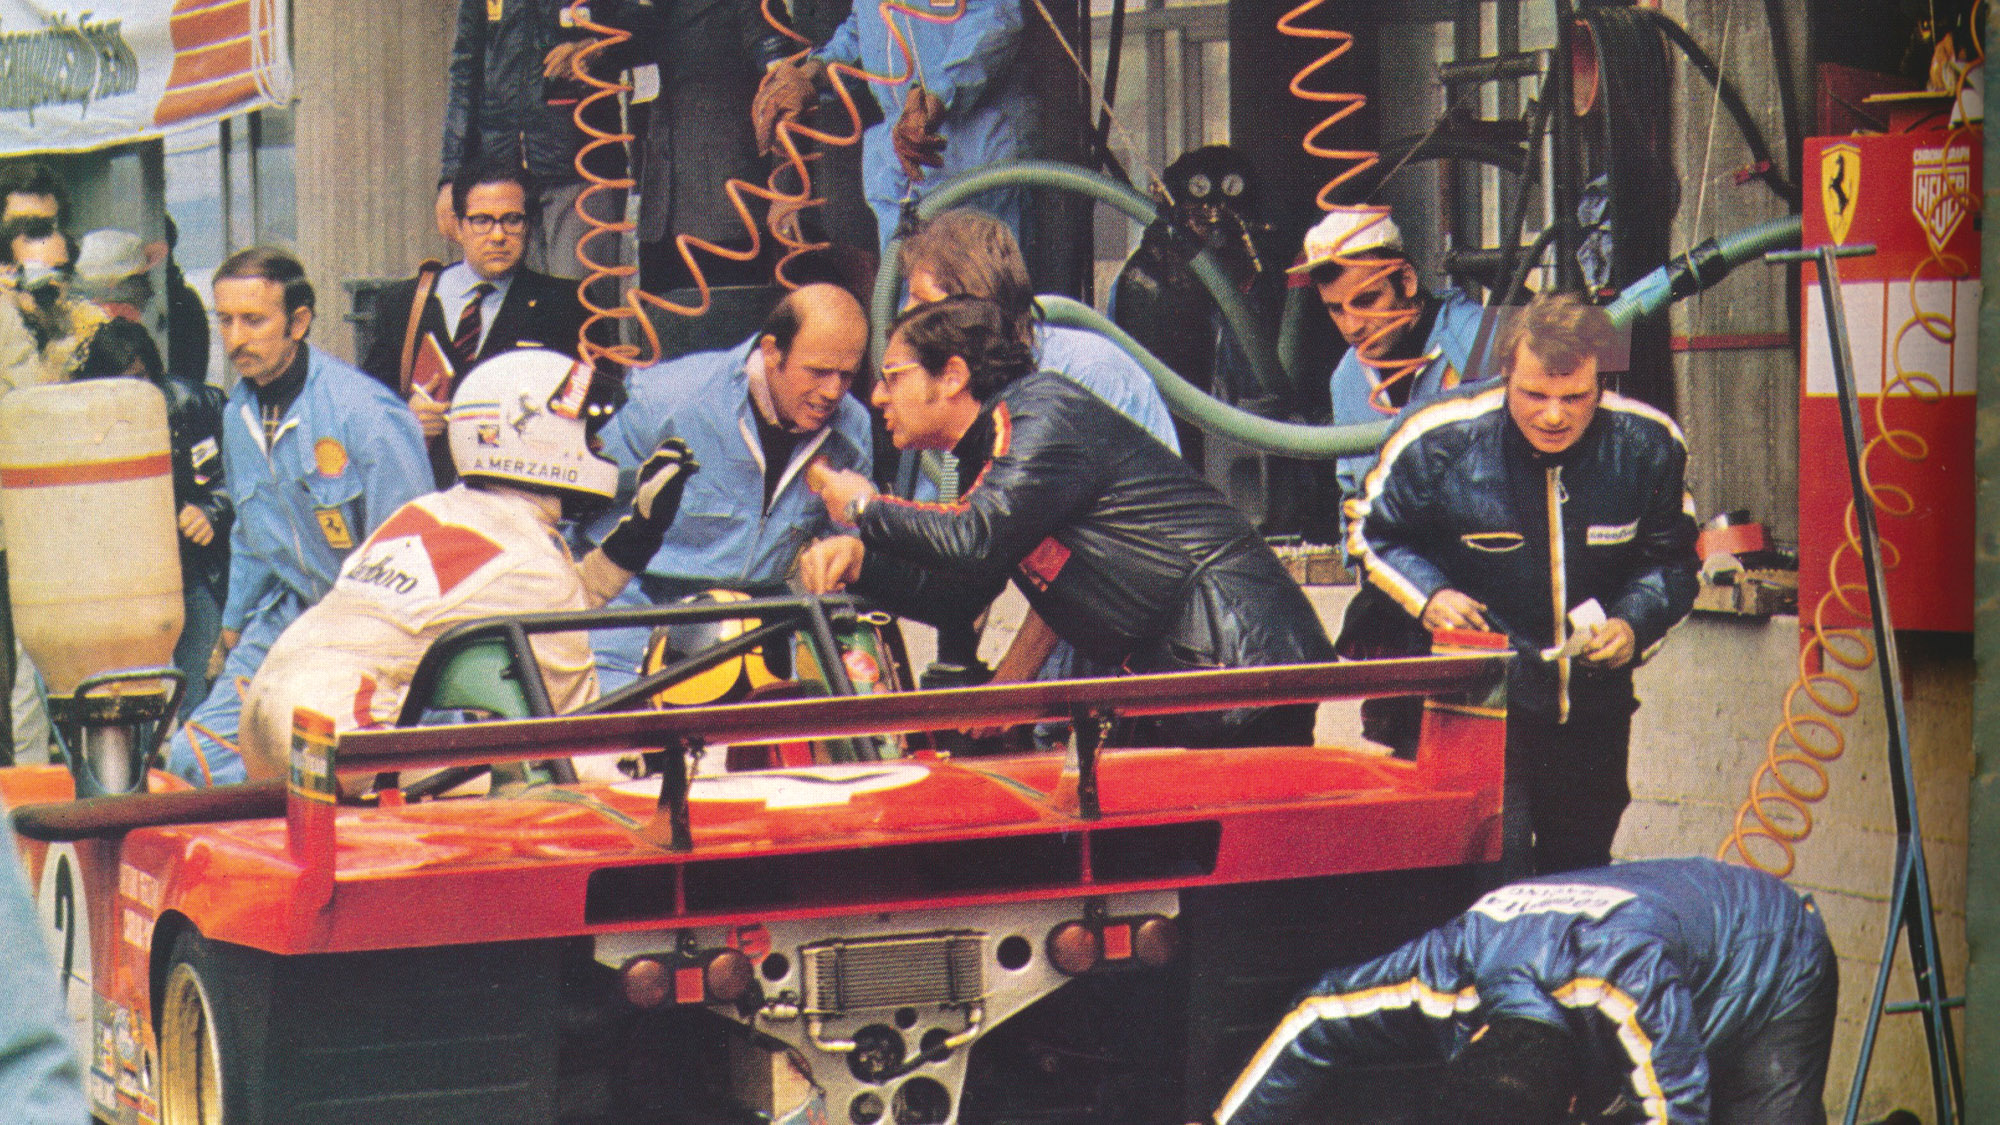 Arturo Merzario refuses to get out of his Ferrari at the 1973 Nurburgring 1000Kms